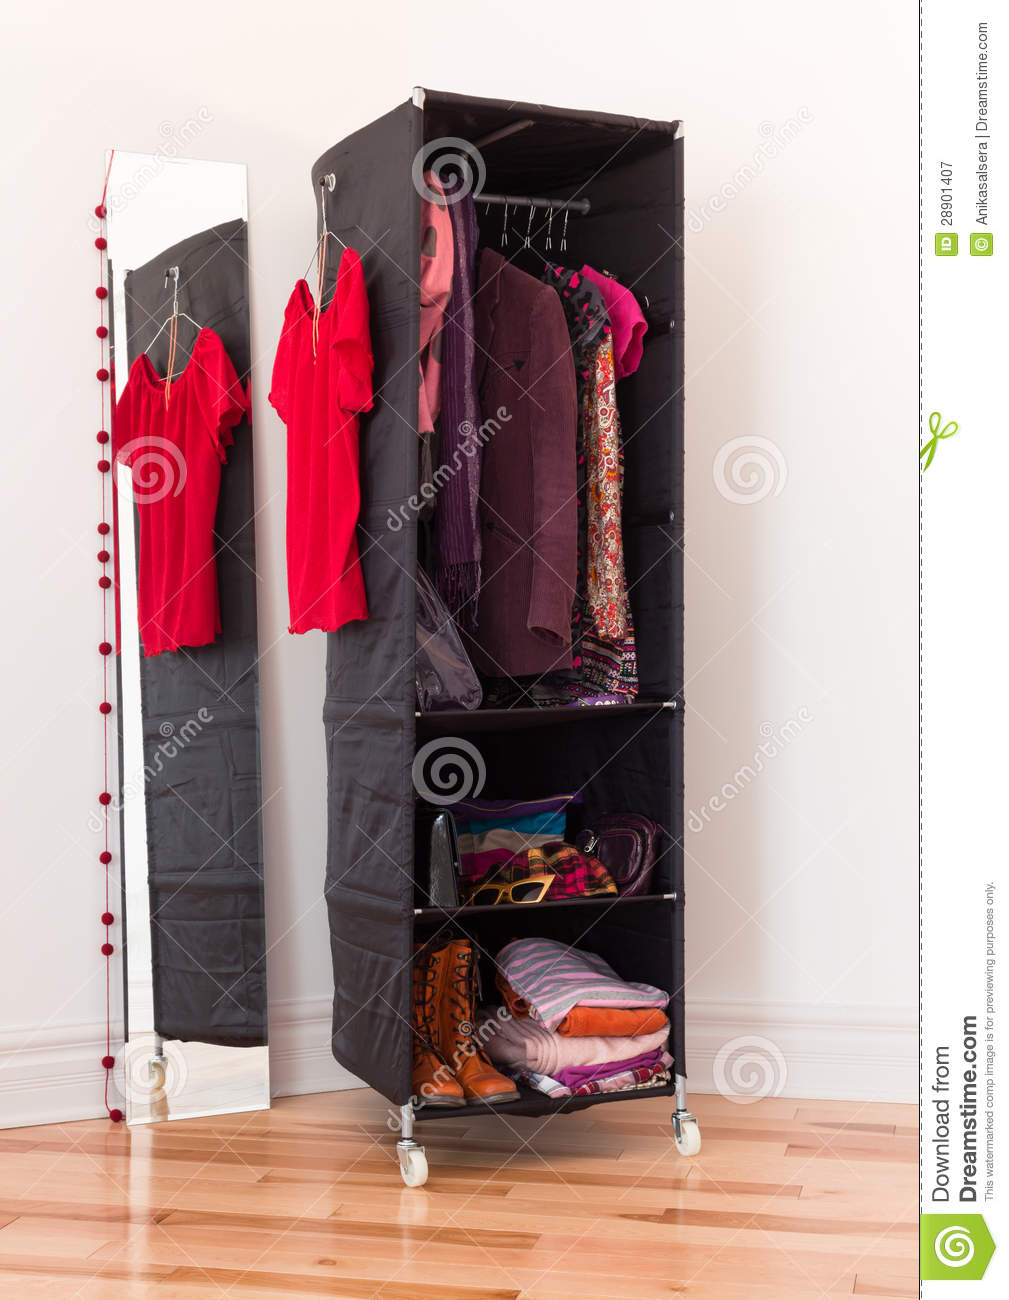 Clothes Organizer With Clothing And Accessories Stock